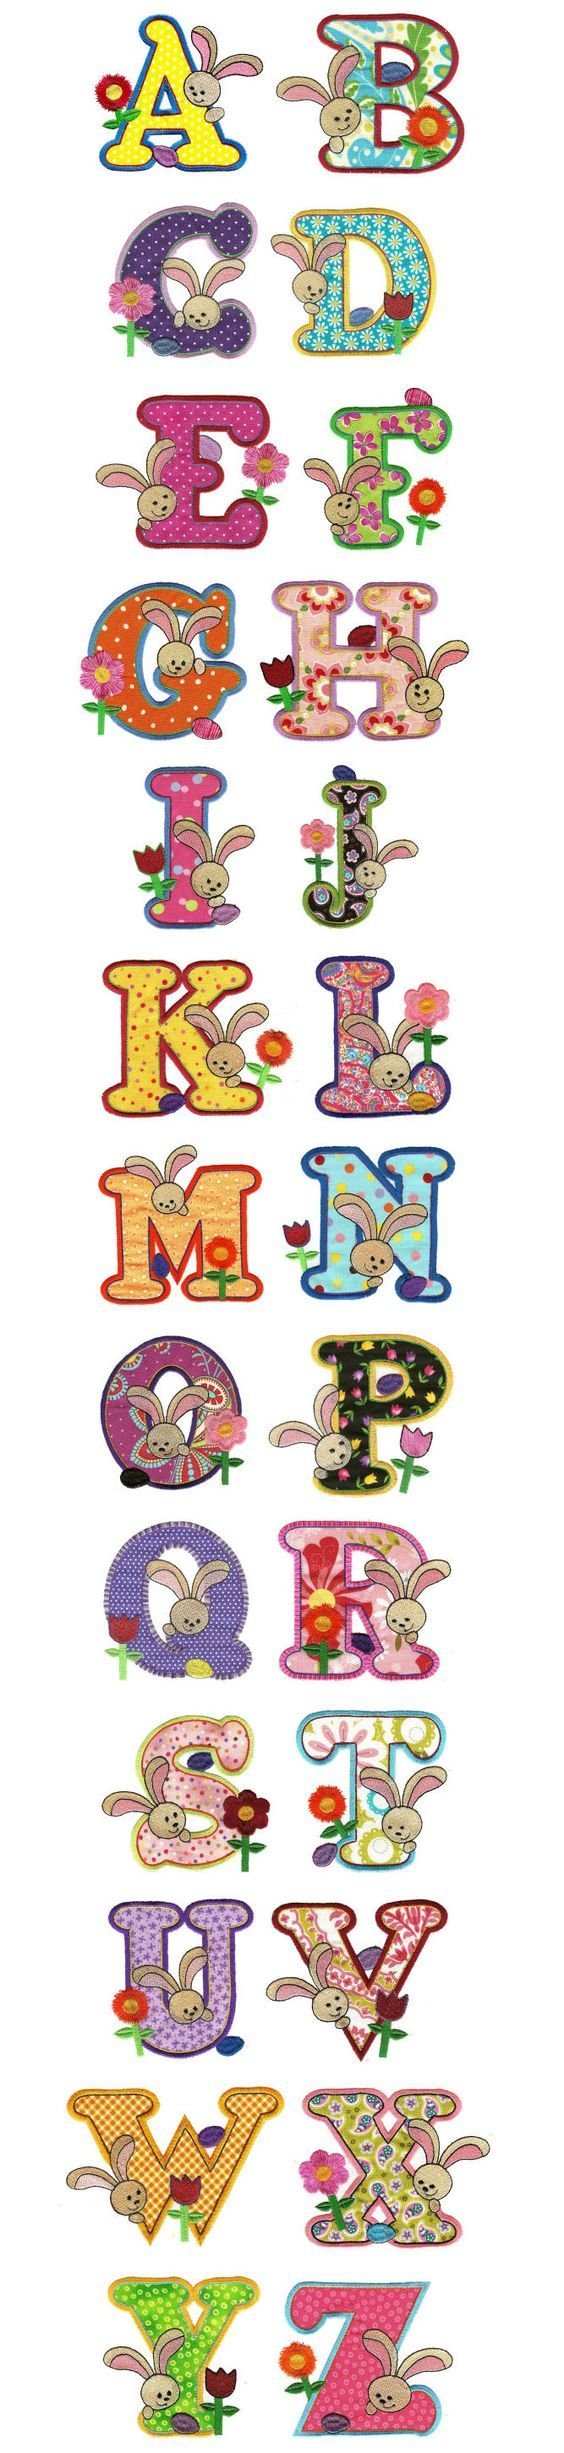 Embroidery | Free Maching Embroidery Designs | Egg Hunt Easter Alphabet Applique: